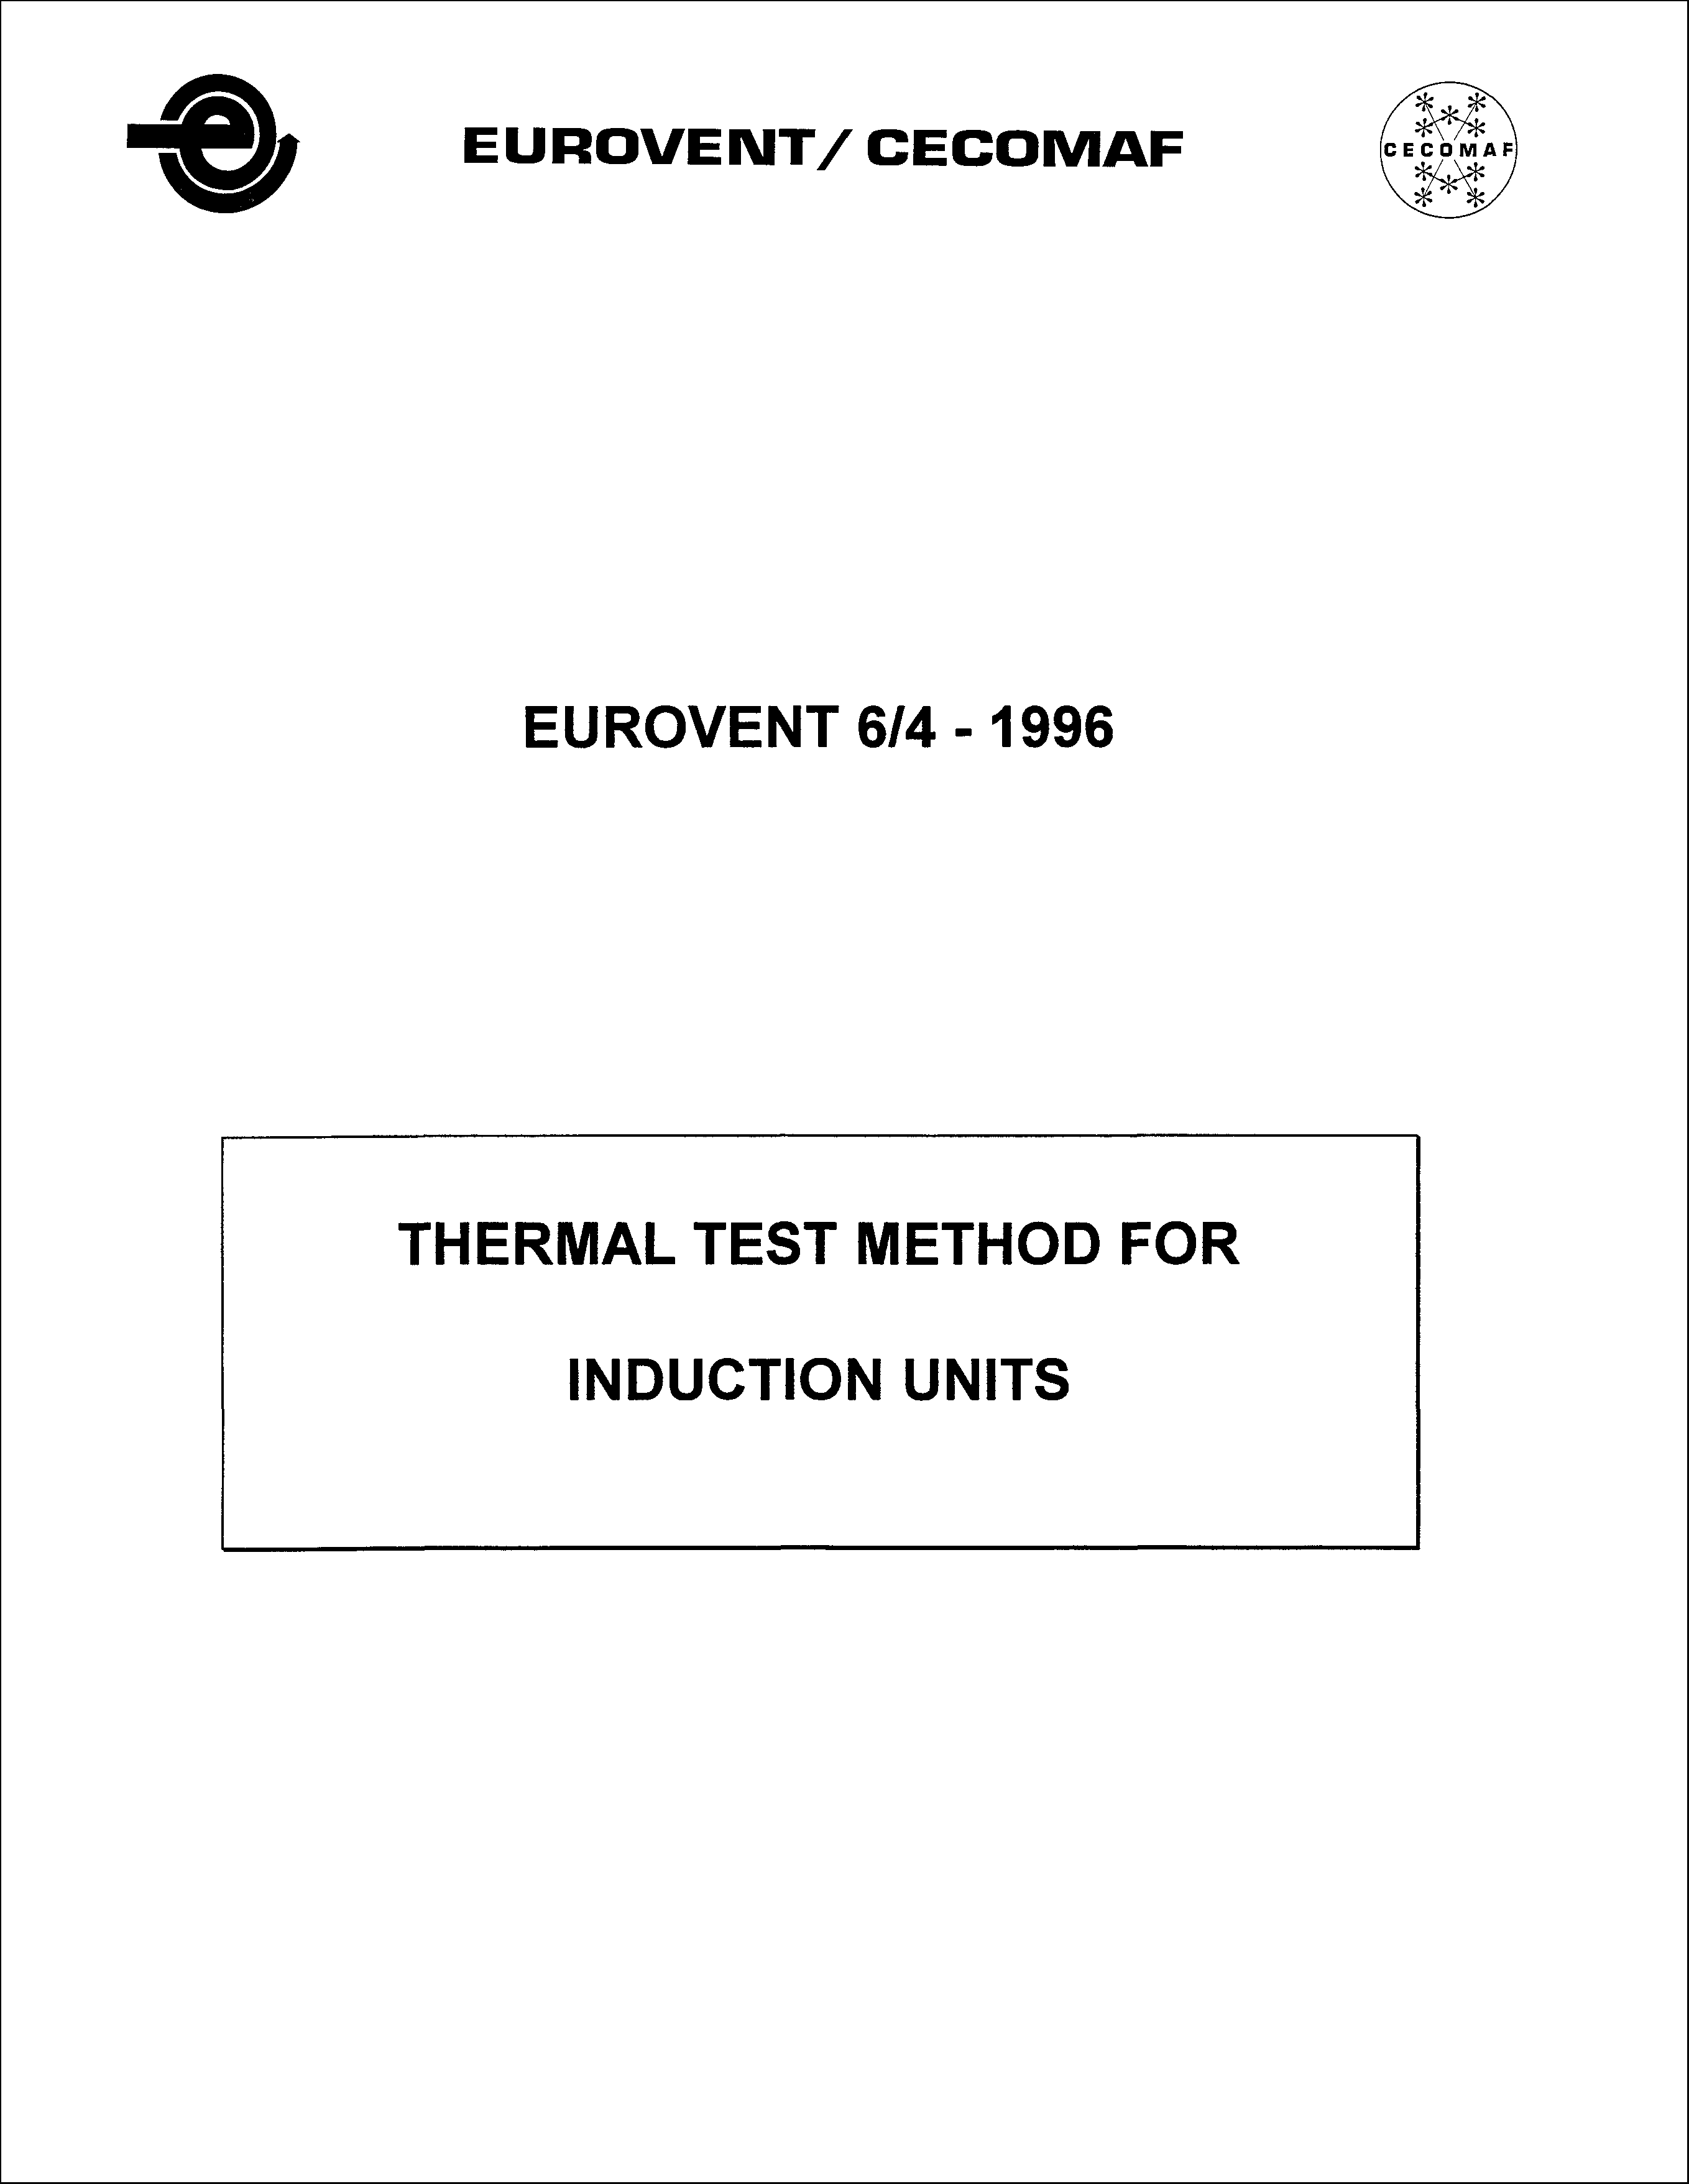 1996 - Thermal test method for Induction units